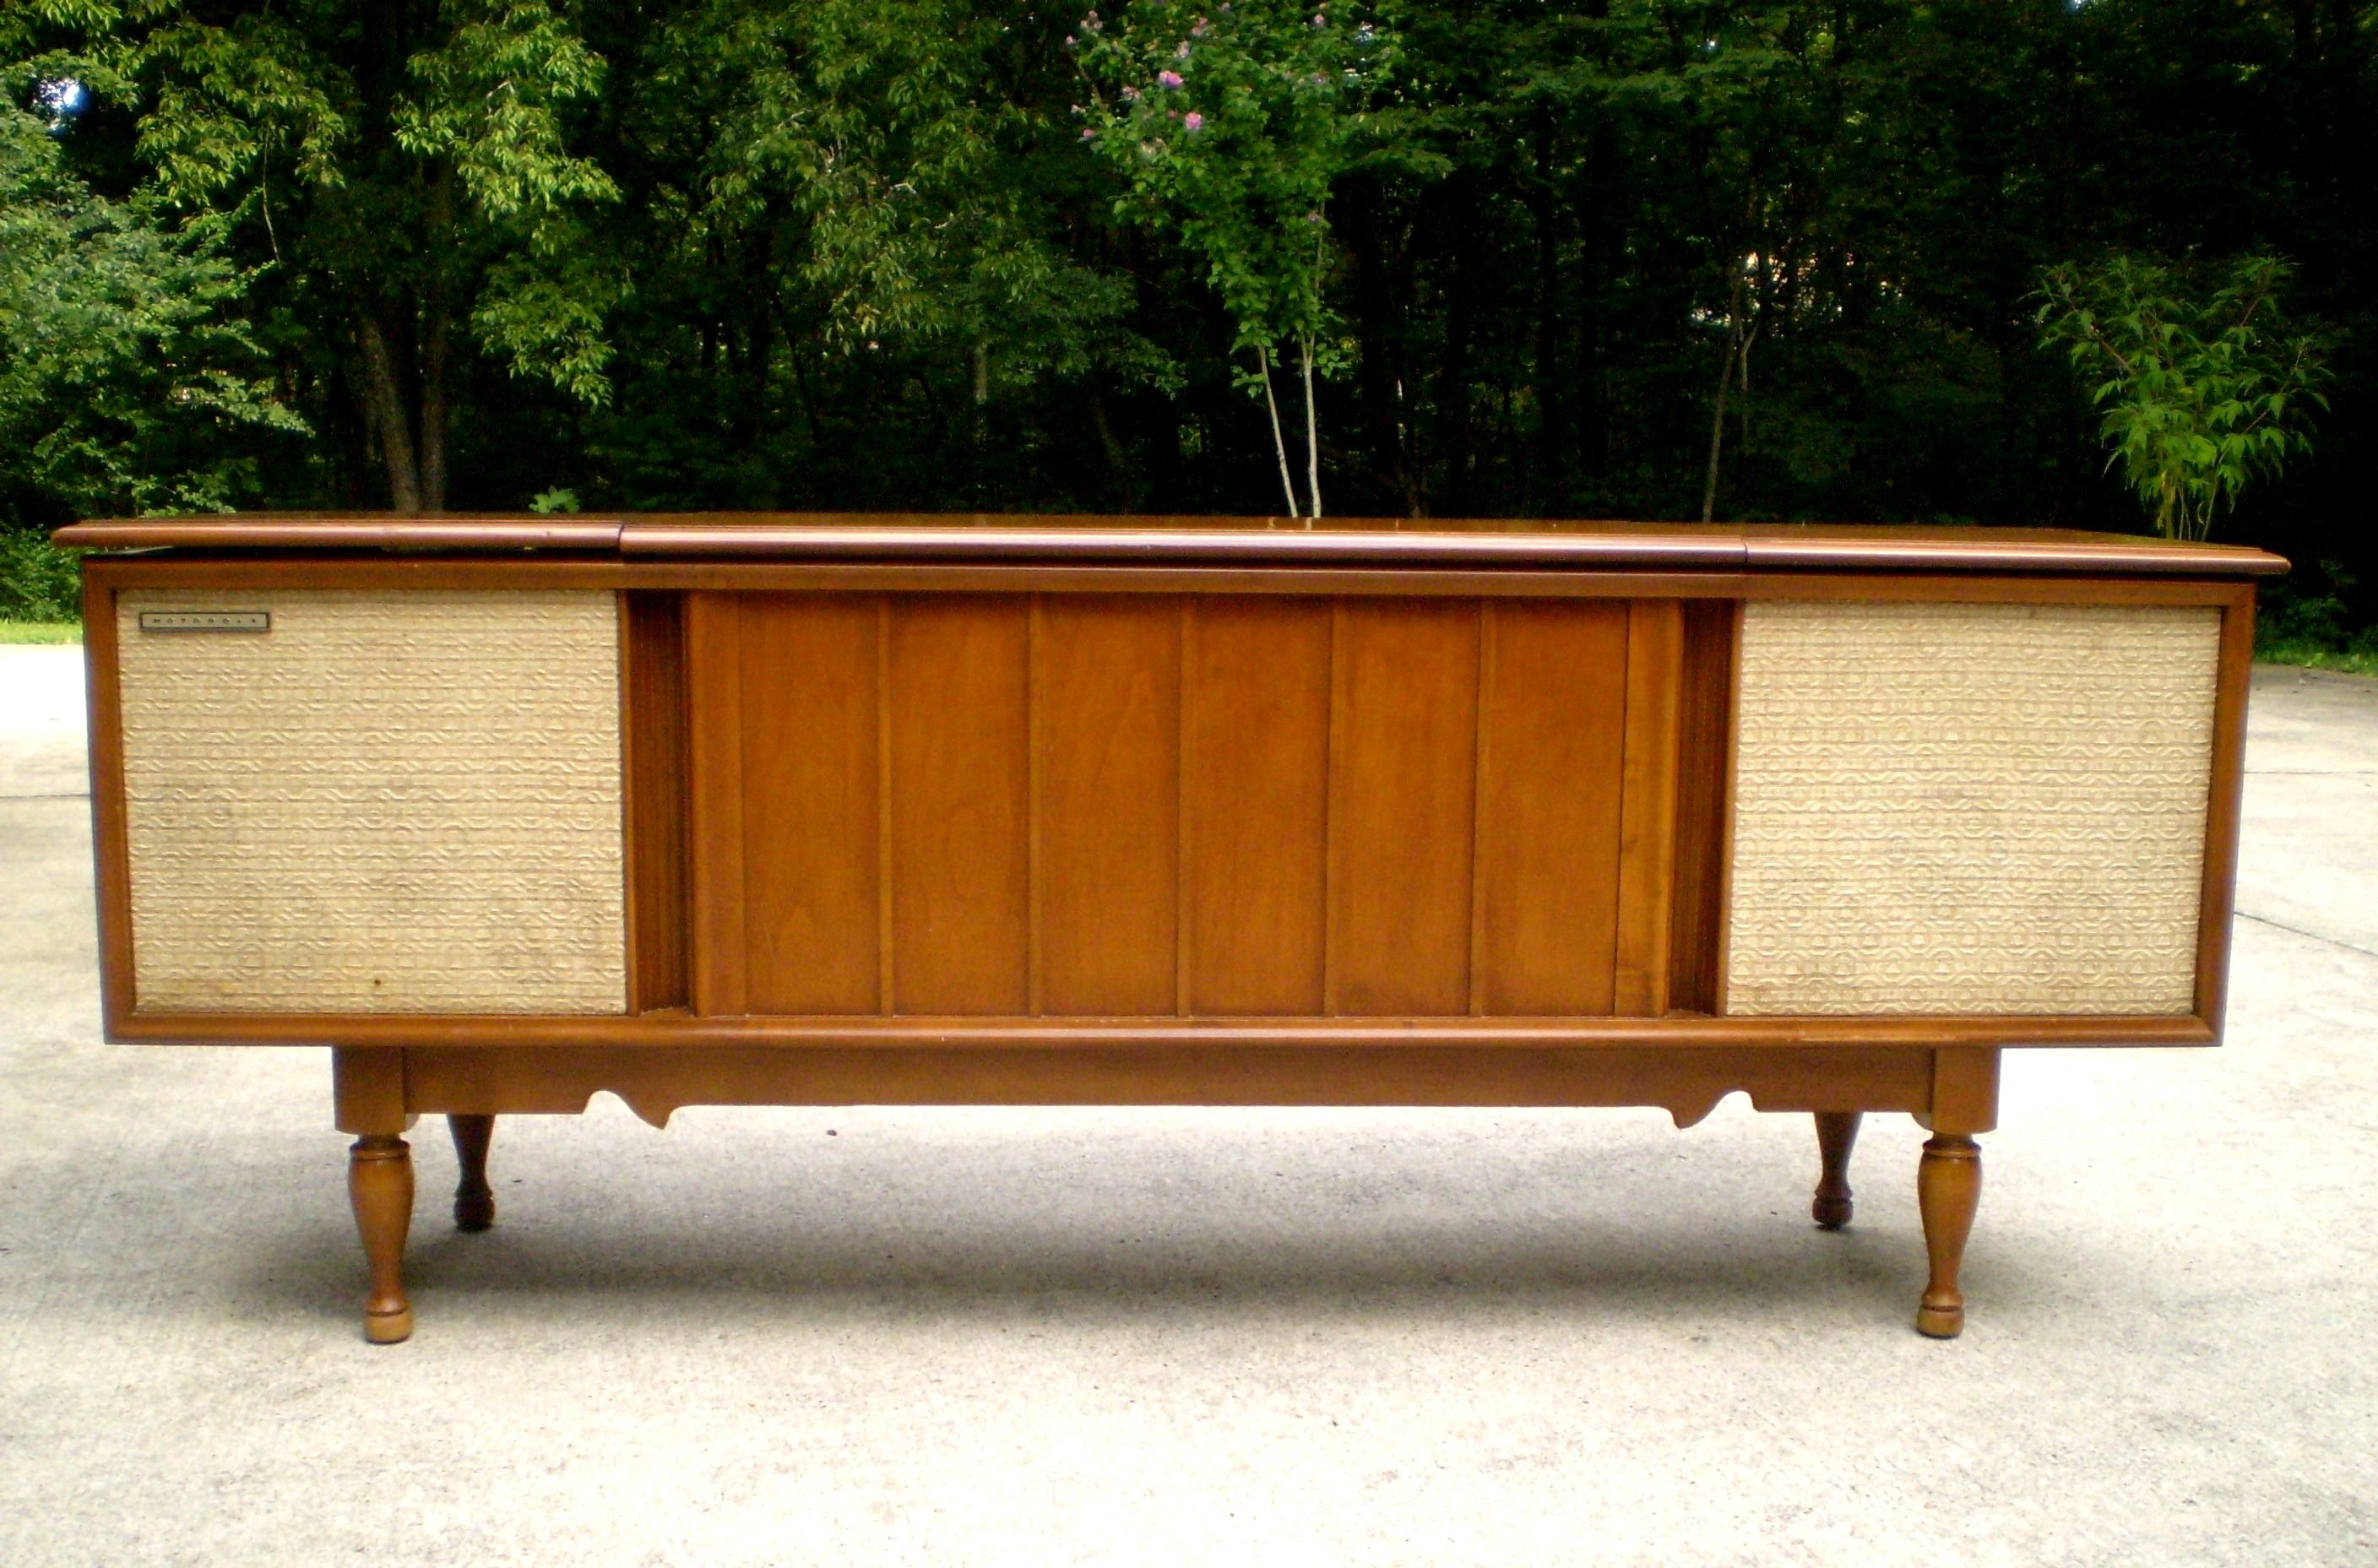 1959 Motorola Stereo Console Cabinet For Sale In Nashville, TN. SOLD!